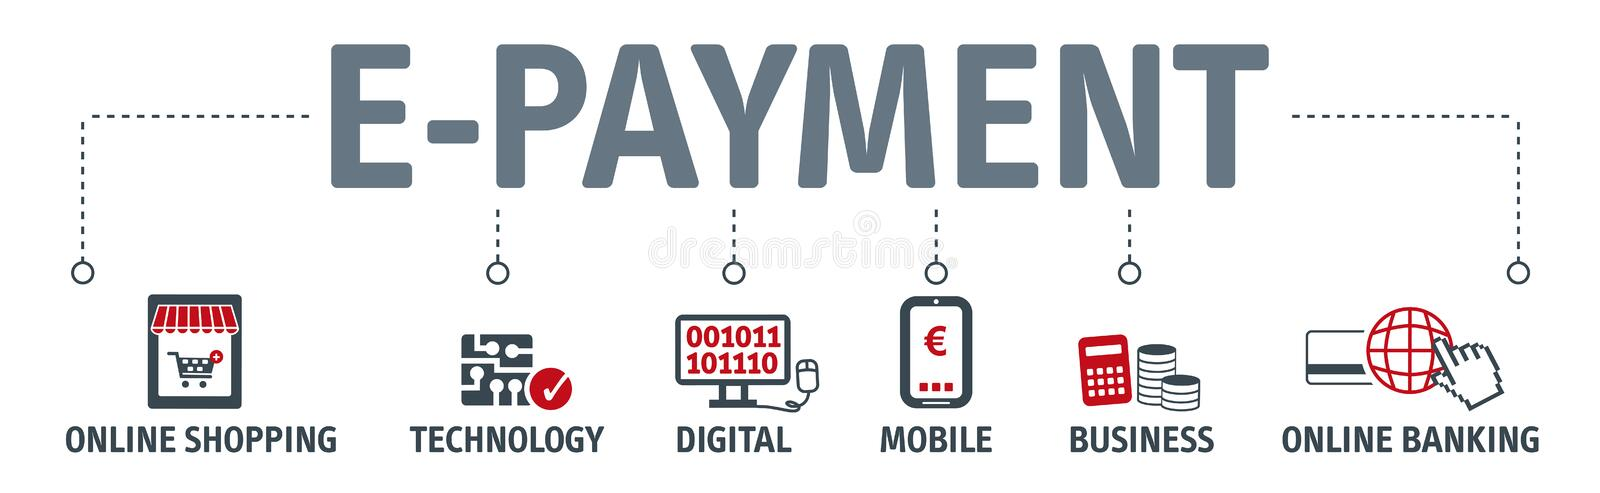 Mobile payment, internet banking and business. Banner E-Payment Internet Banking Technology Concept Vector Illustration with icons royalty free illustration